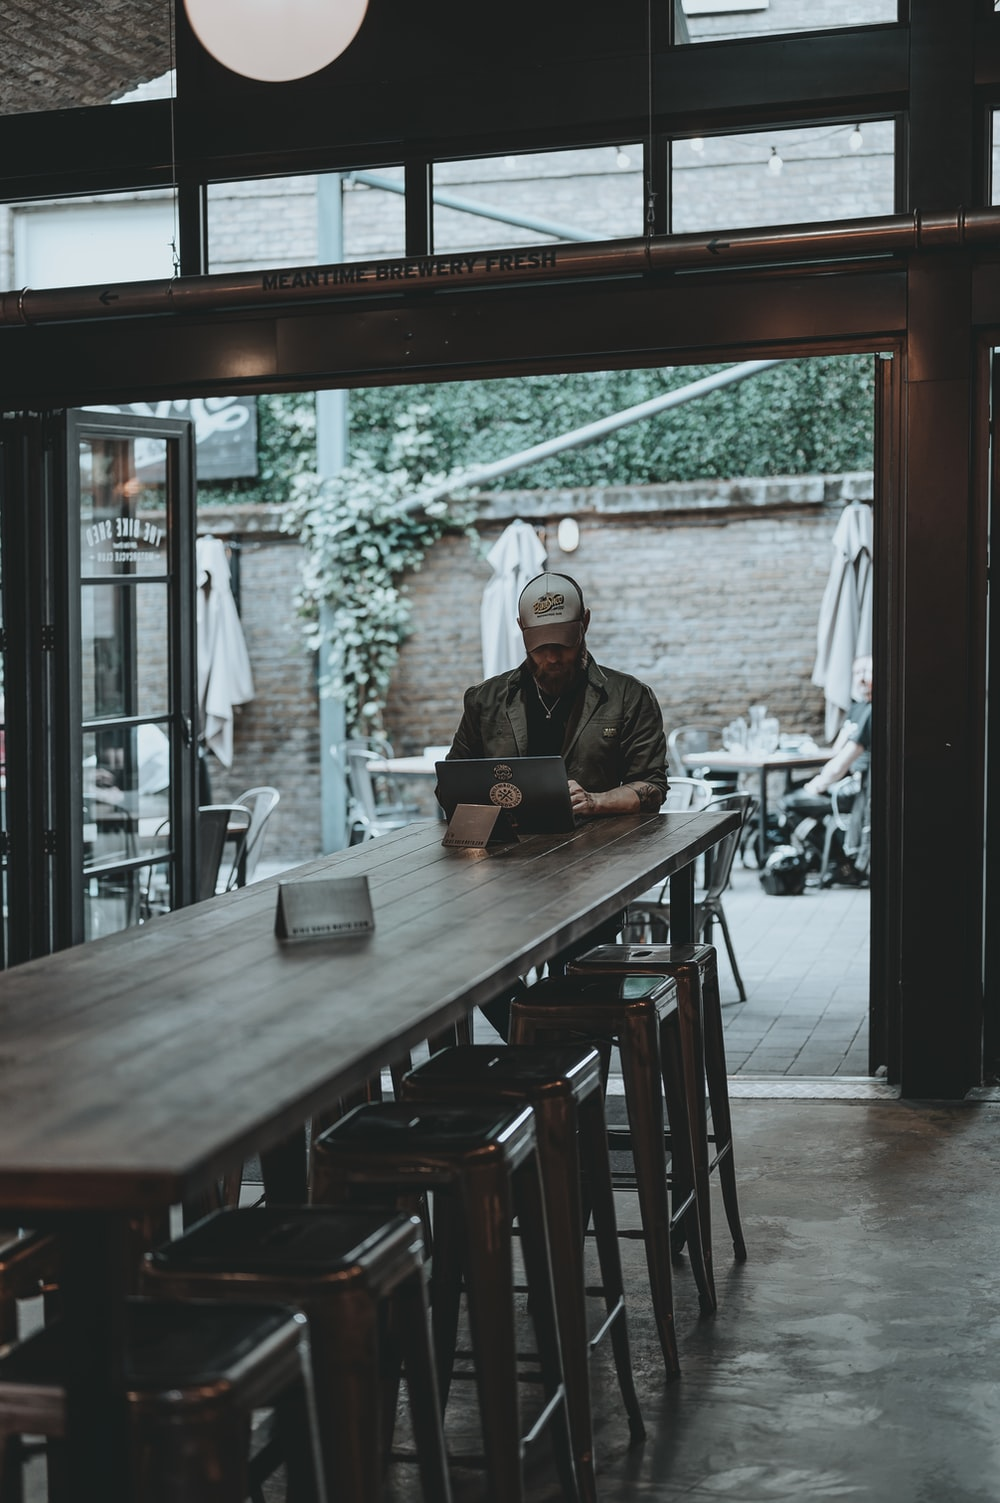 man in black jacket sitting on chair near table